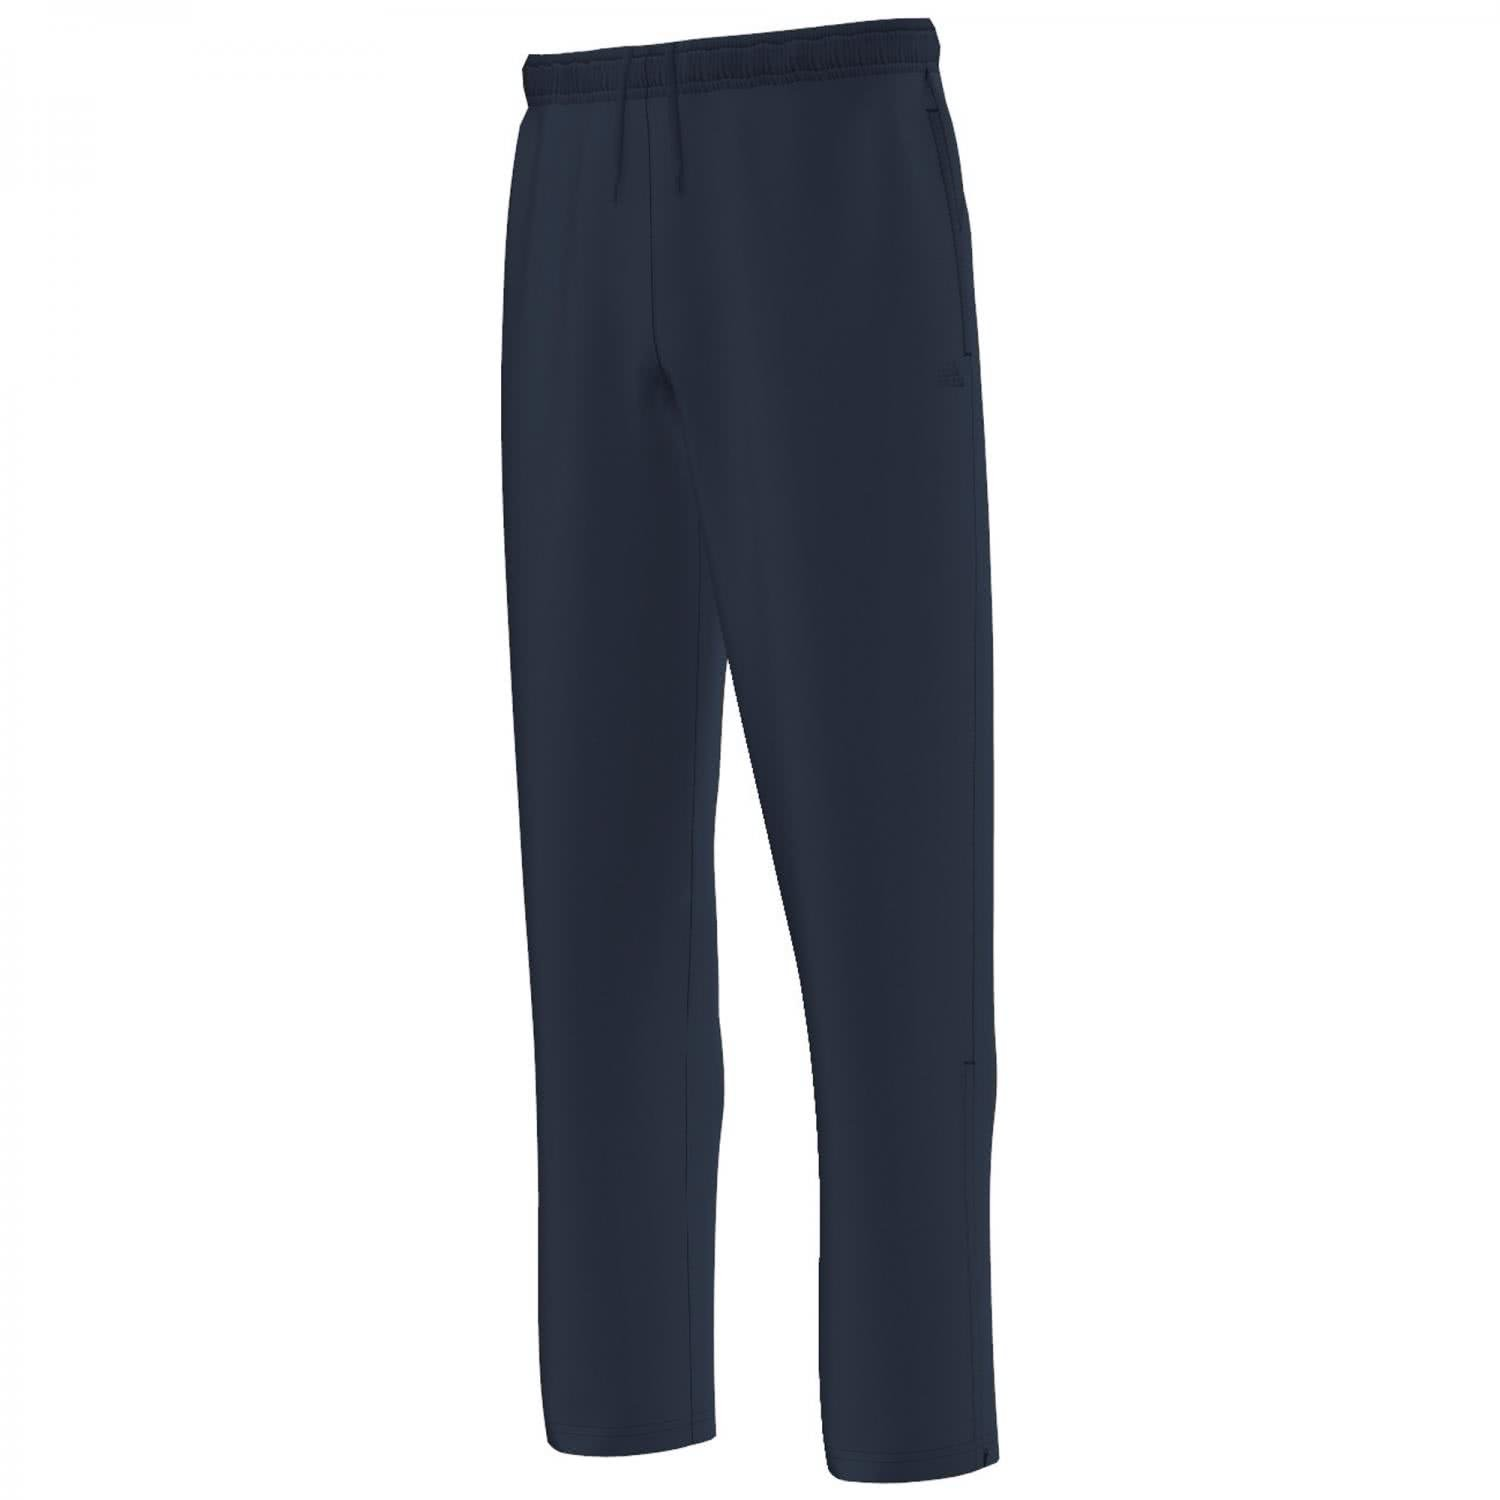 a3656d78fd2f Adidas CR Ess 3s Woven Pants OH ClimaLite Mens Sports trousers ...